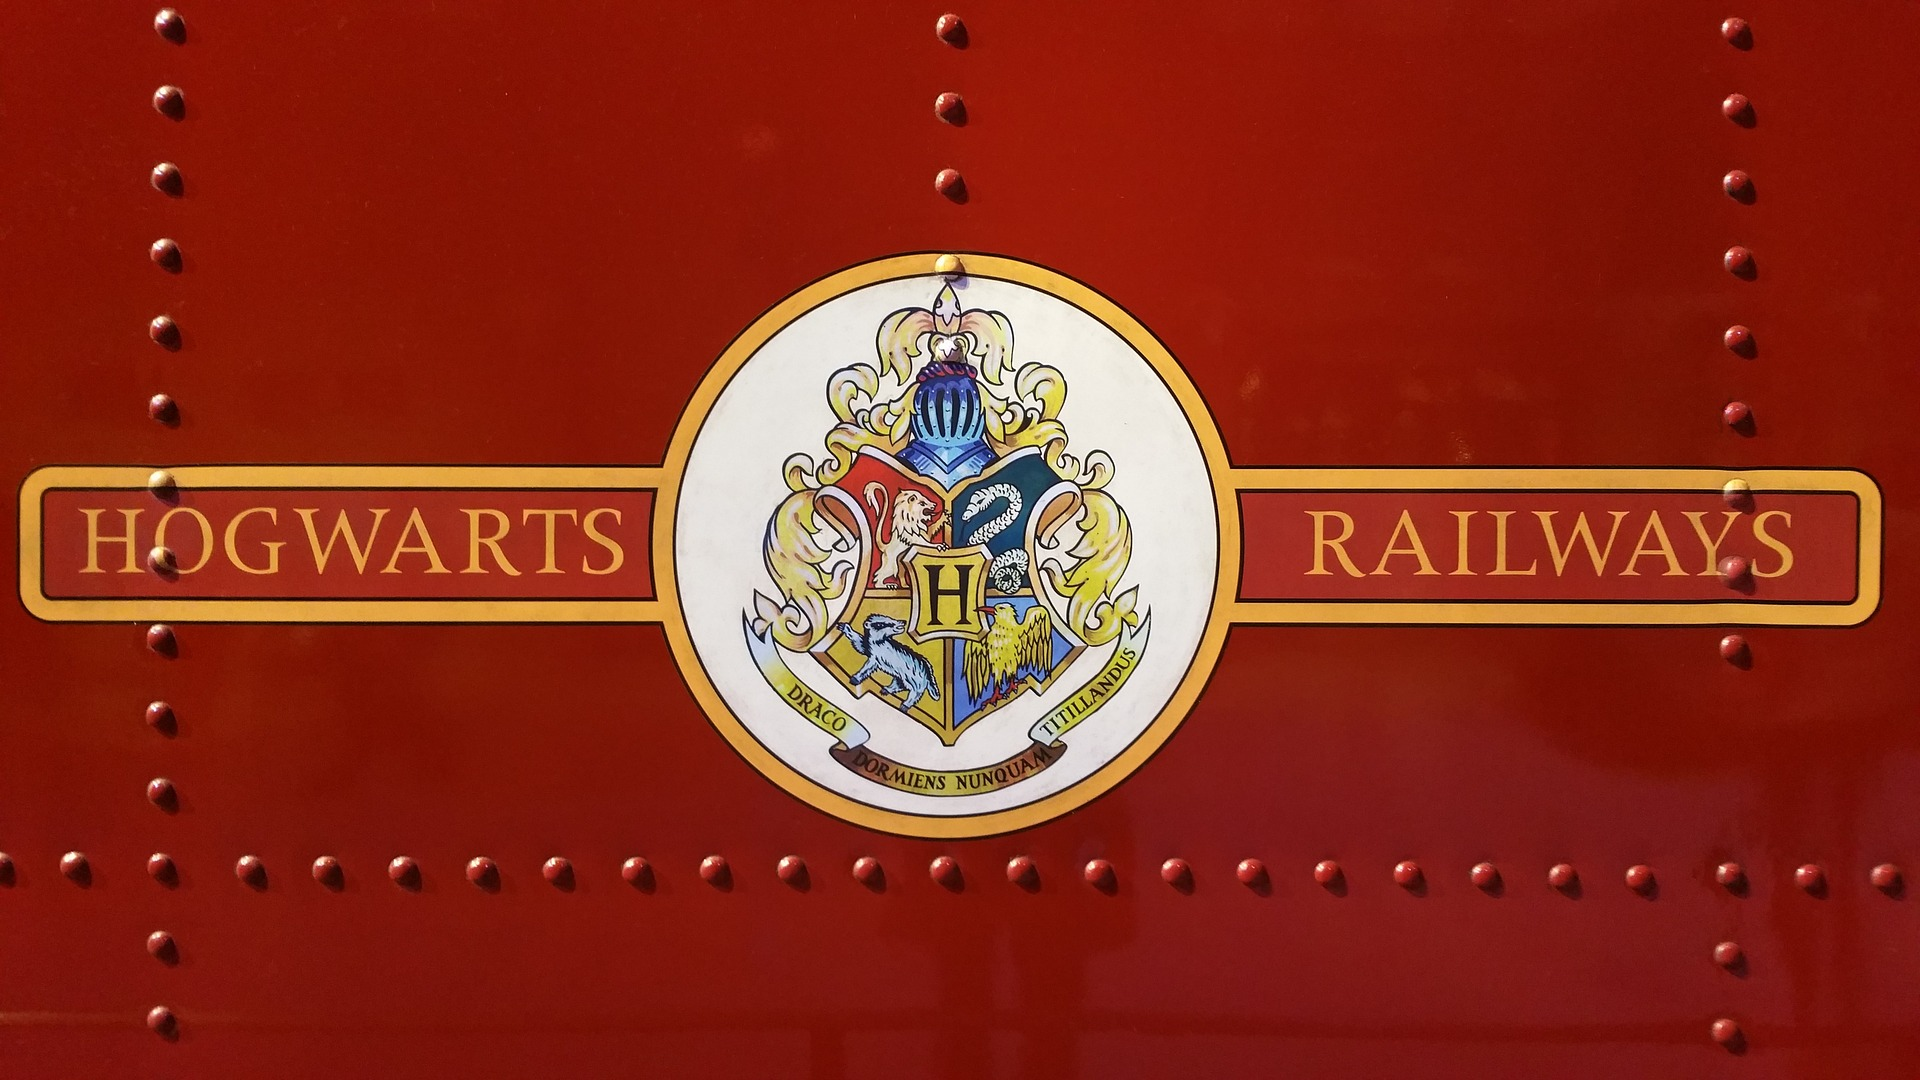 Harry potter hogwarts express logo